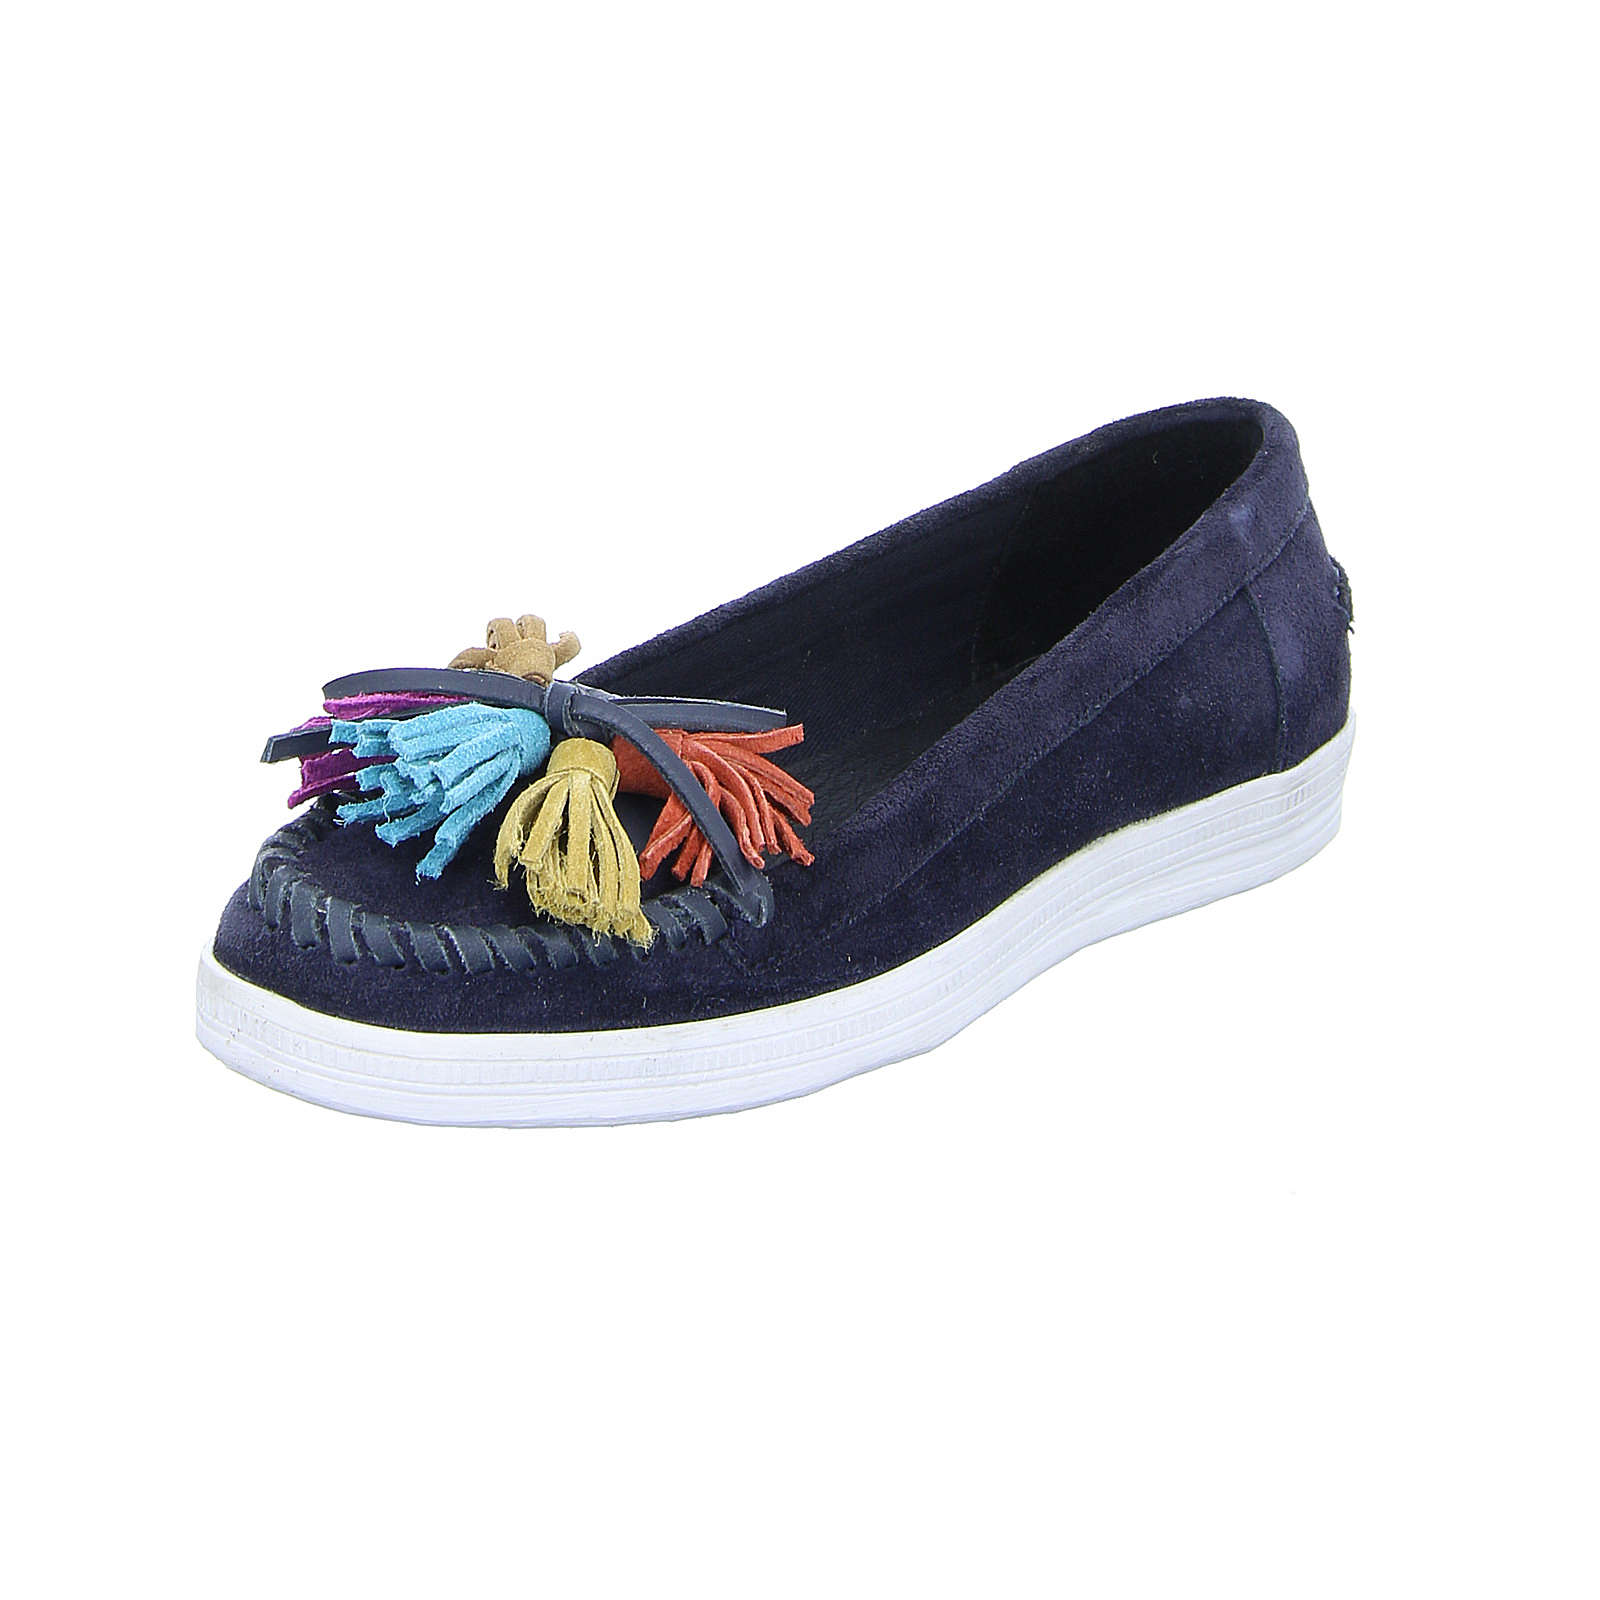 BOXX Slipper blau Damen Gr. 39